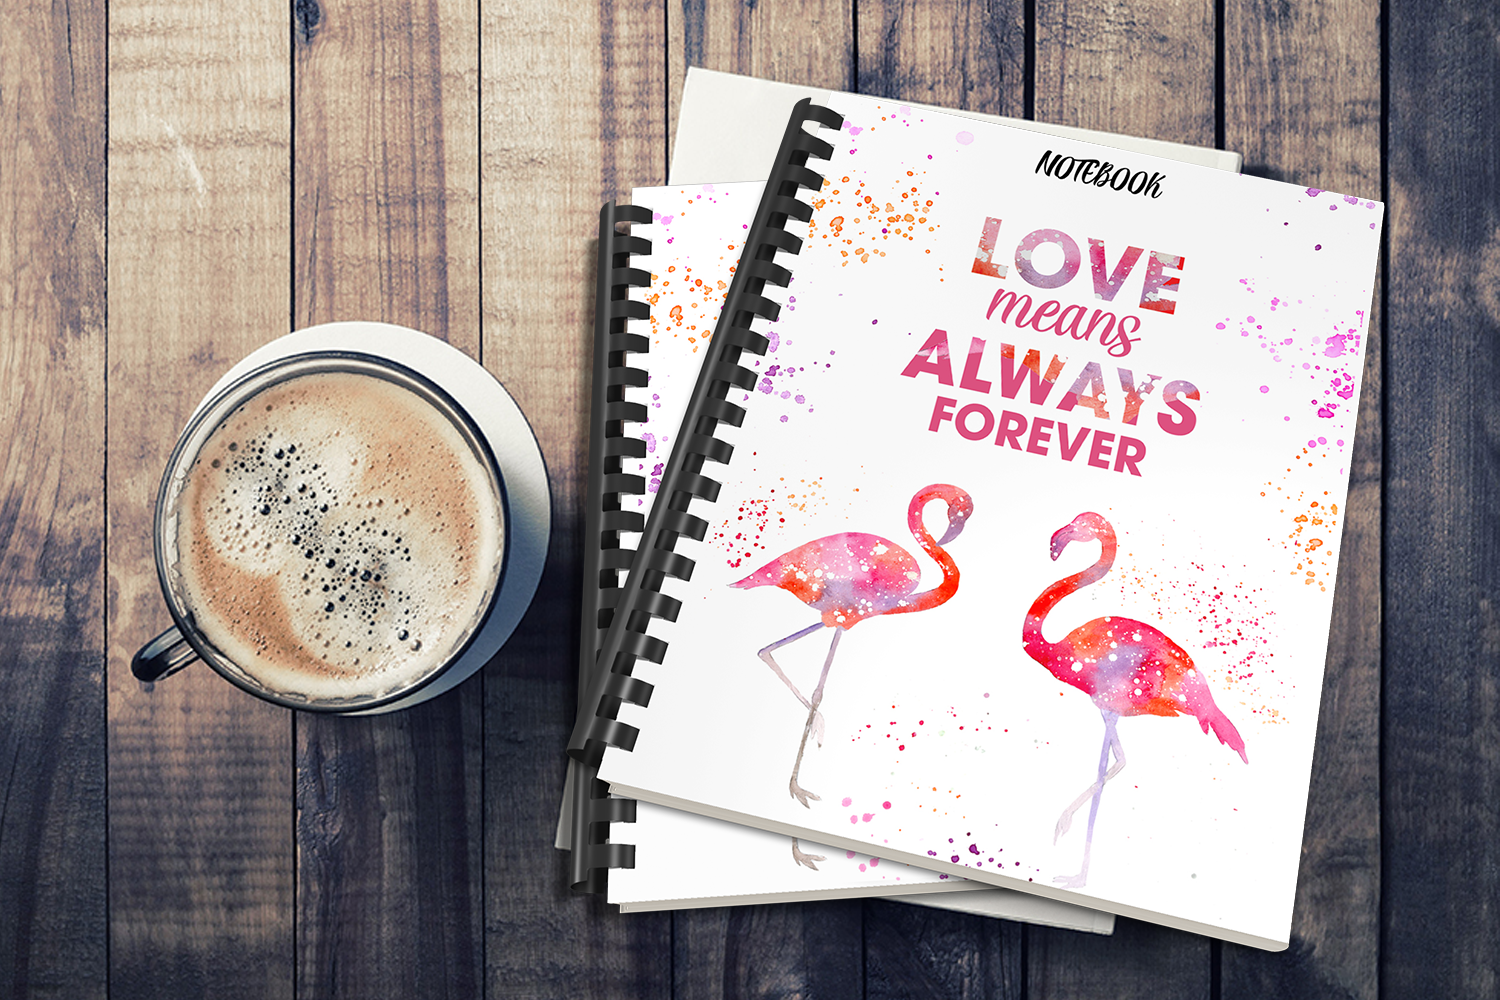 The Notebook LOVE of SWANS paintings, Canvas Designs, Art Designs, Original and Prints.